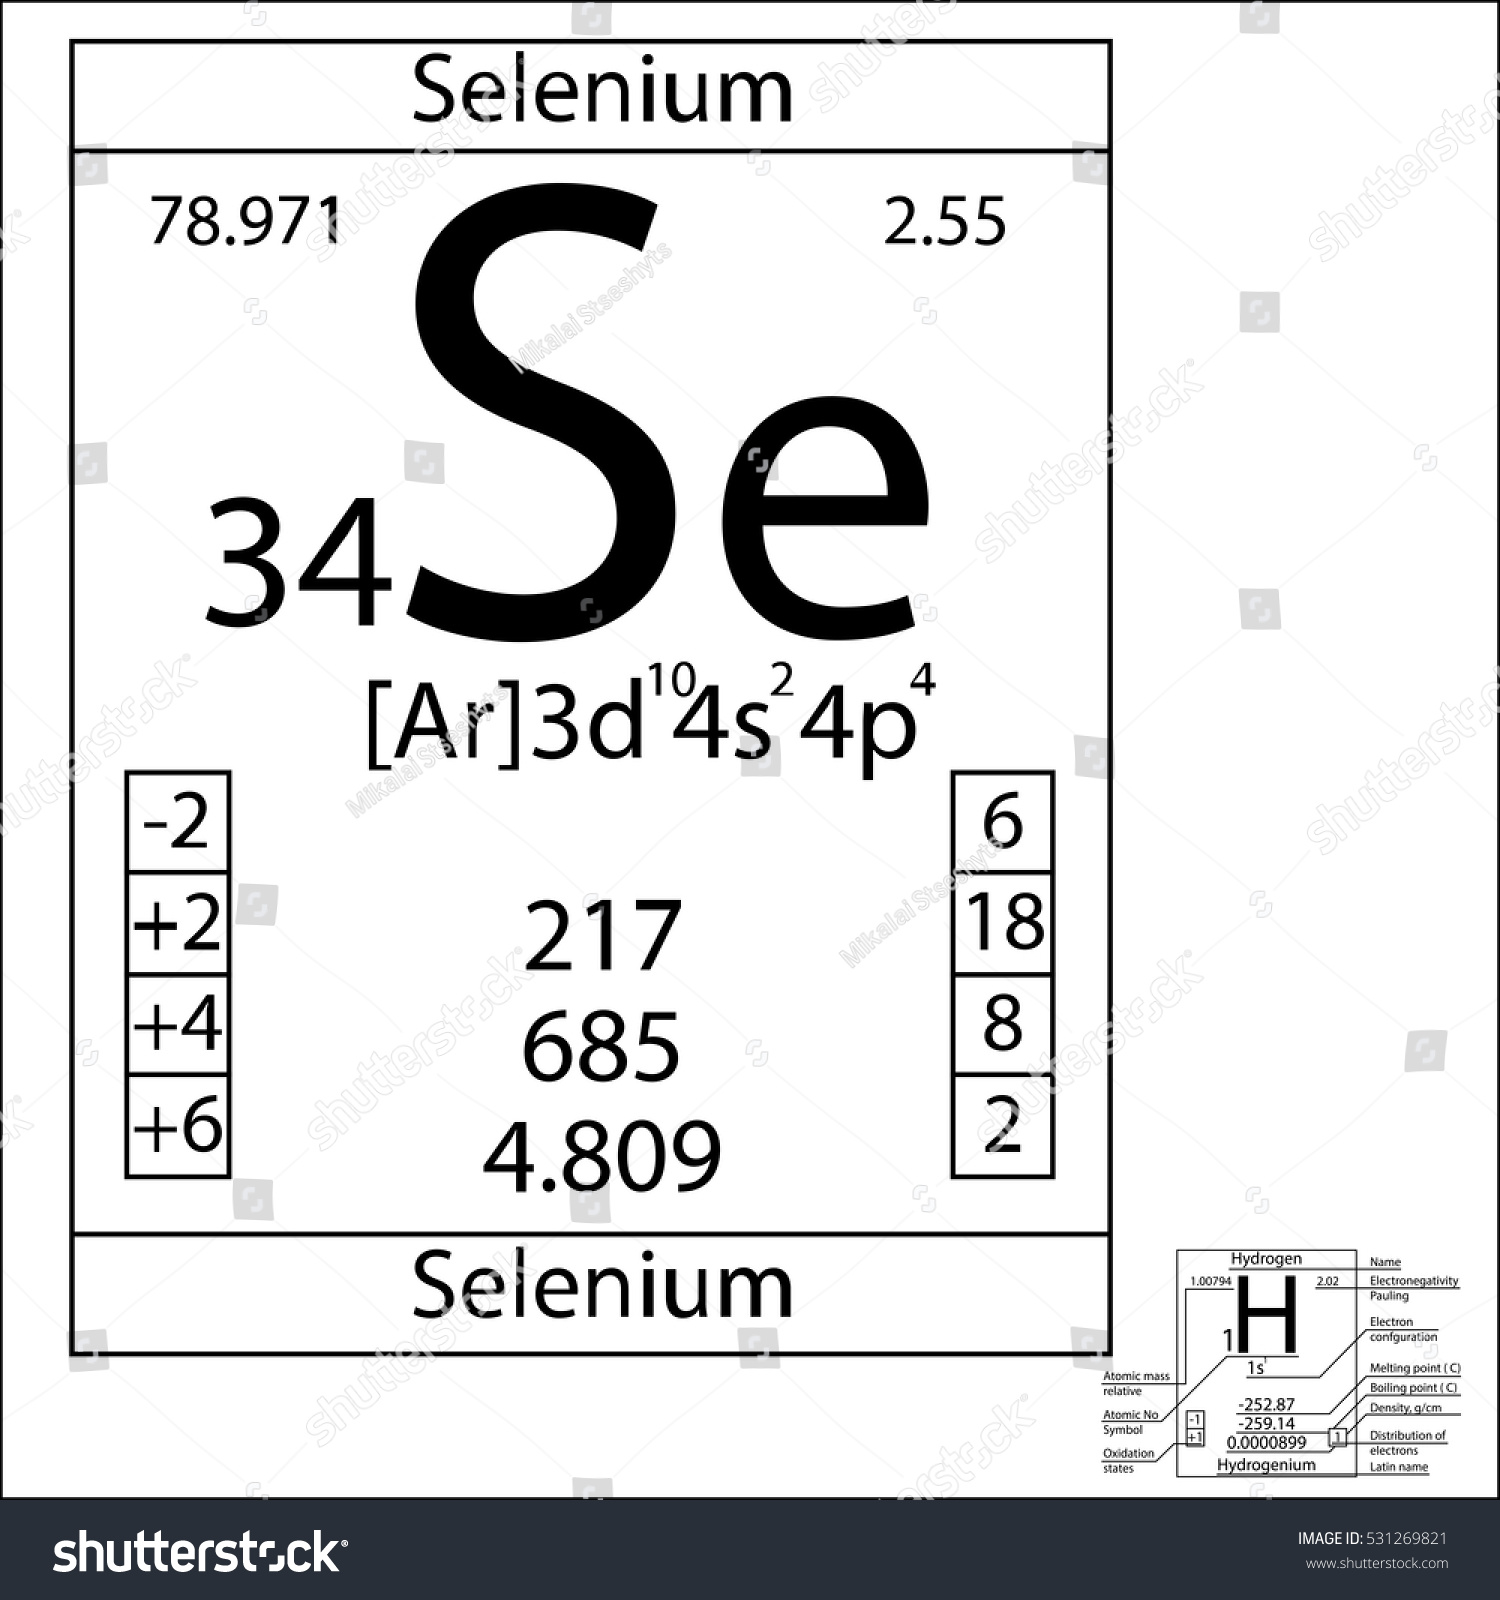 Periodic table element selenium basic properties stock vector the periodic table element selenium with the basic properties gamestrikefo Images